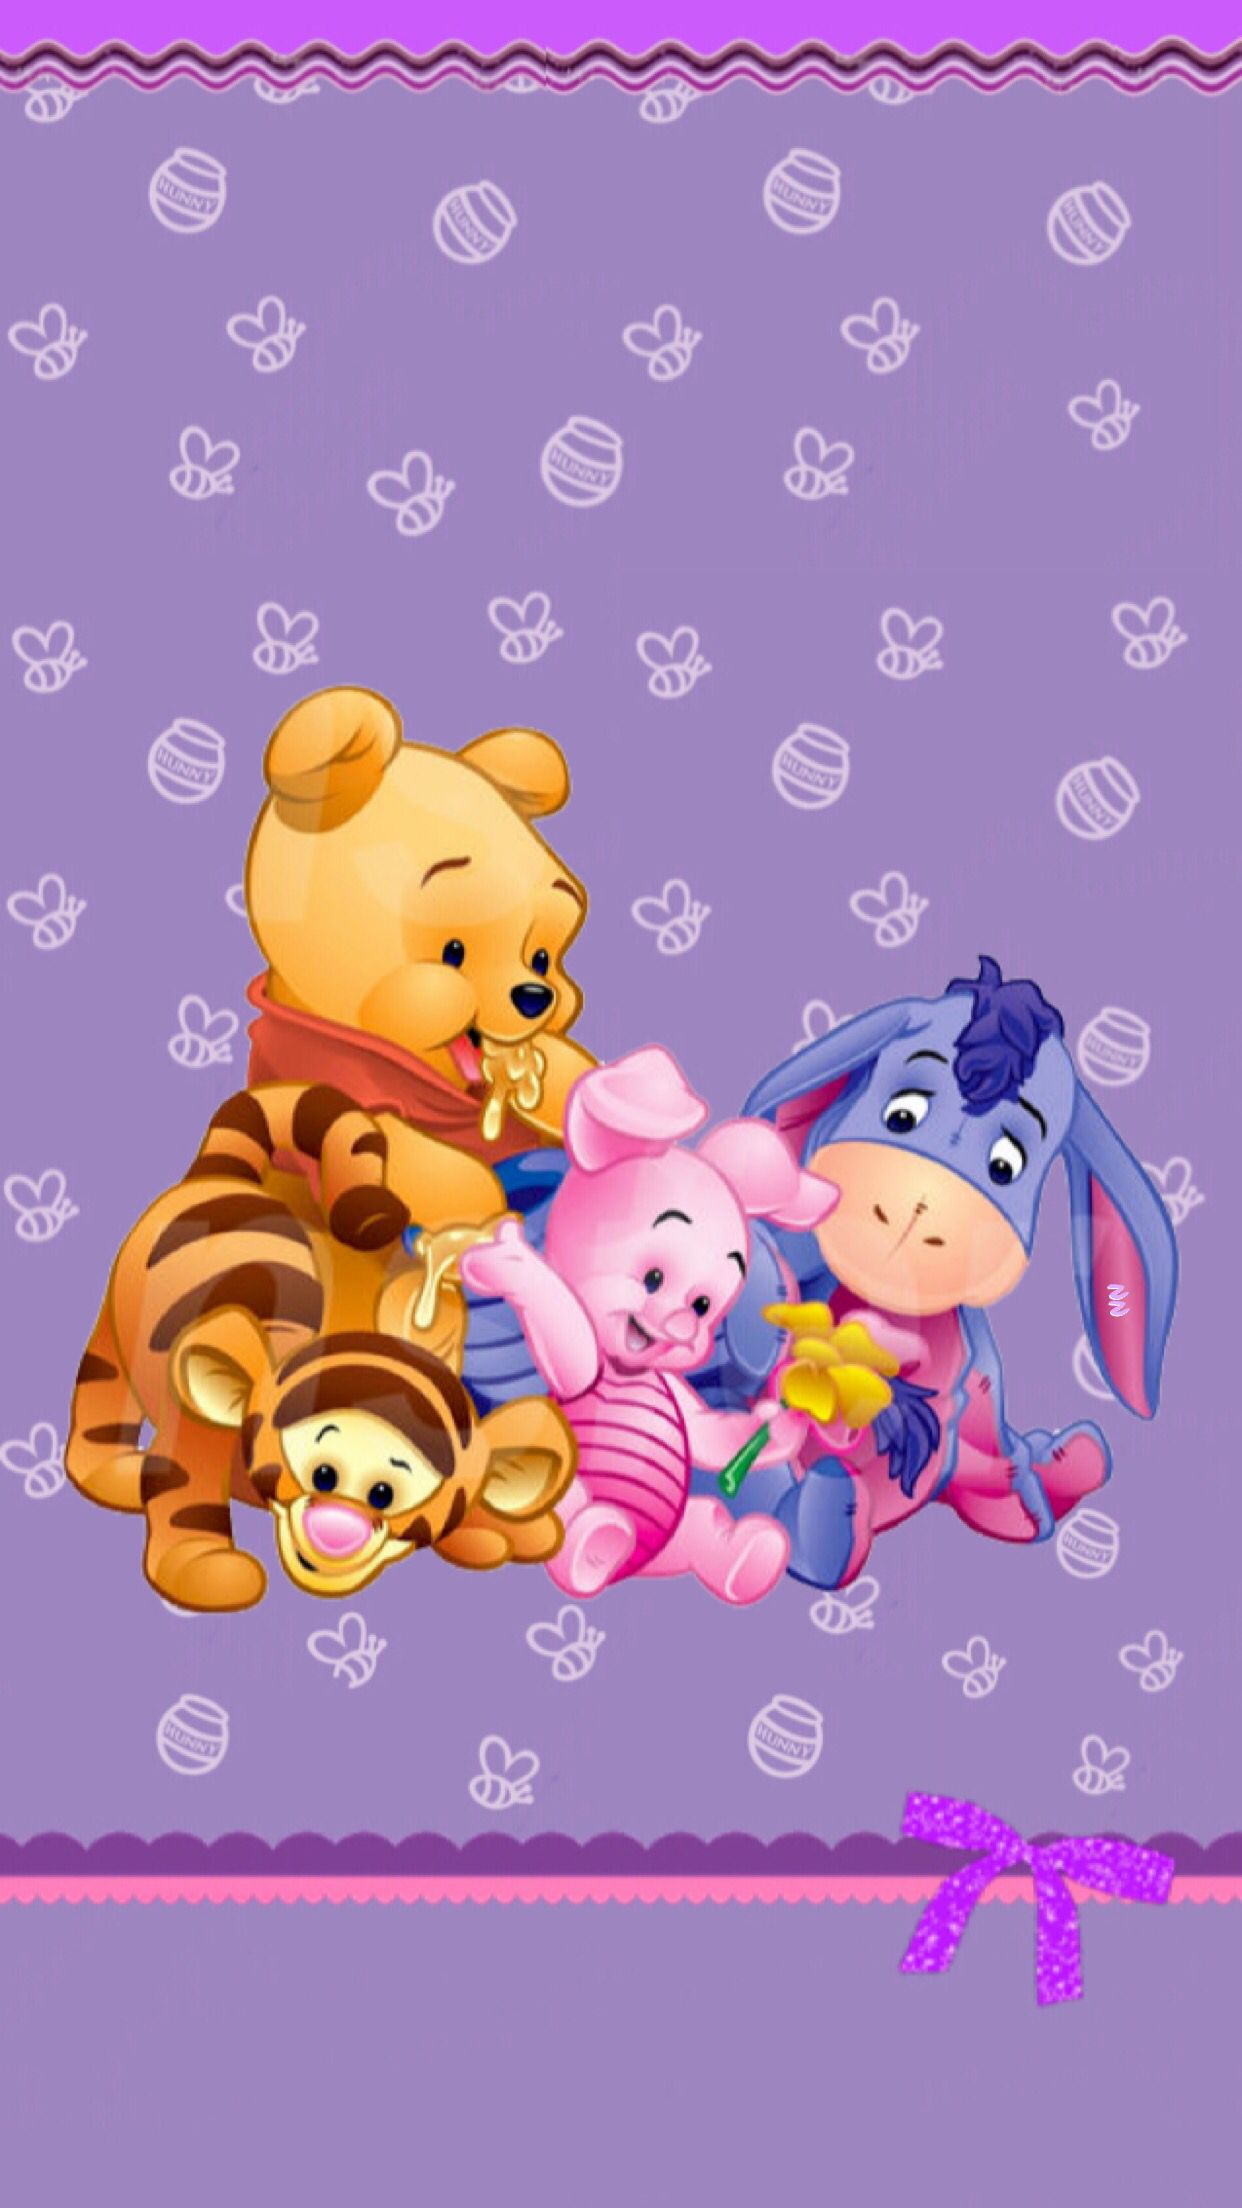 Pin By Tania Castillo Gonzalez On Wallpapers By Me Baby Disney Characters Winnie The Pooh Pictures Cute Winnie The Pooh